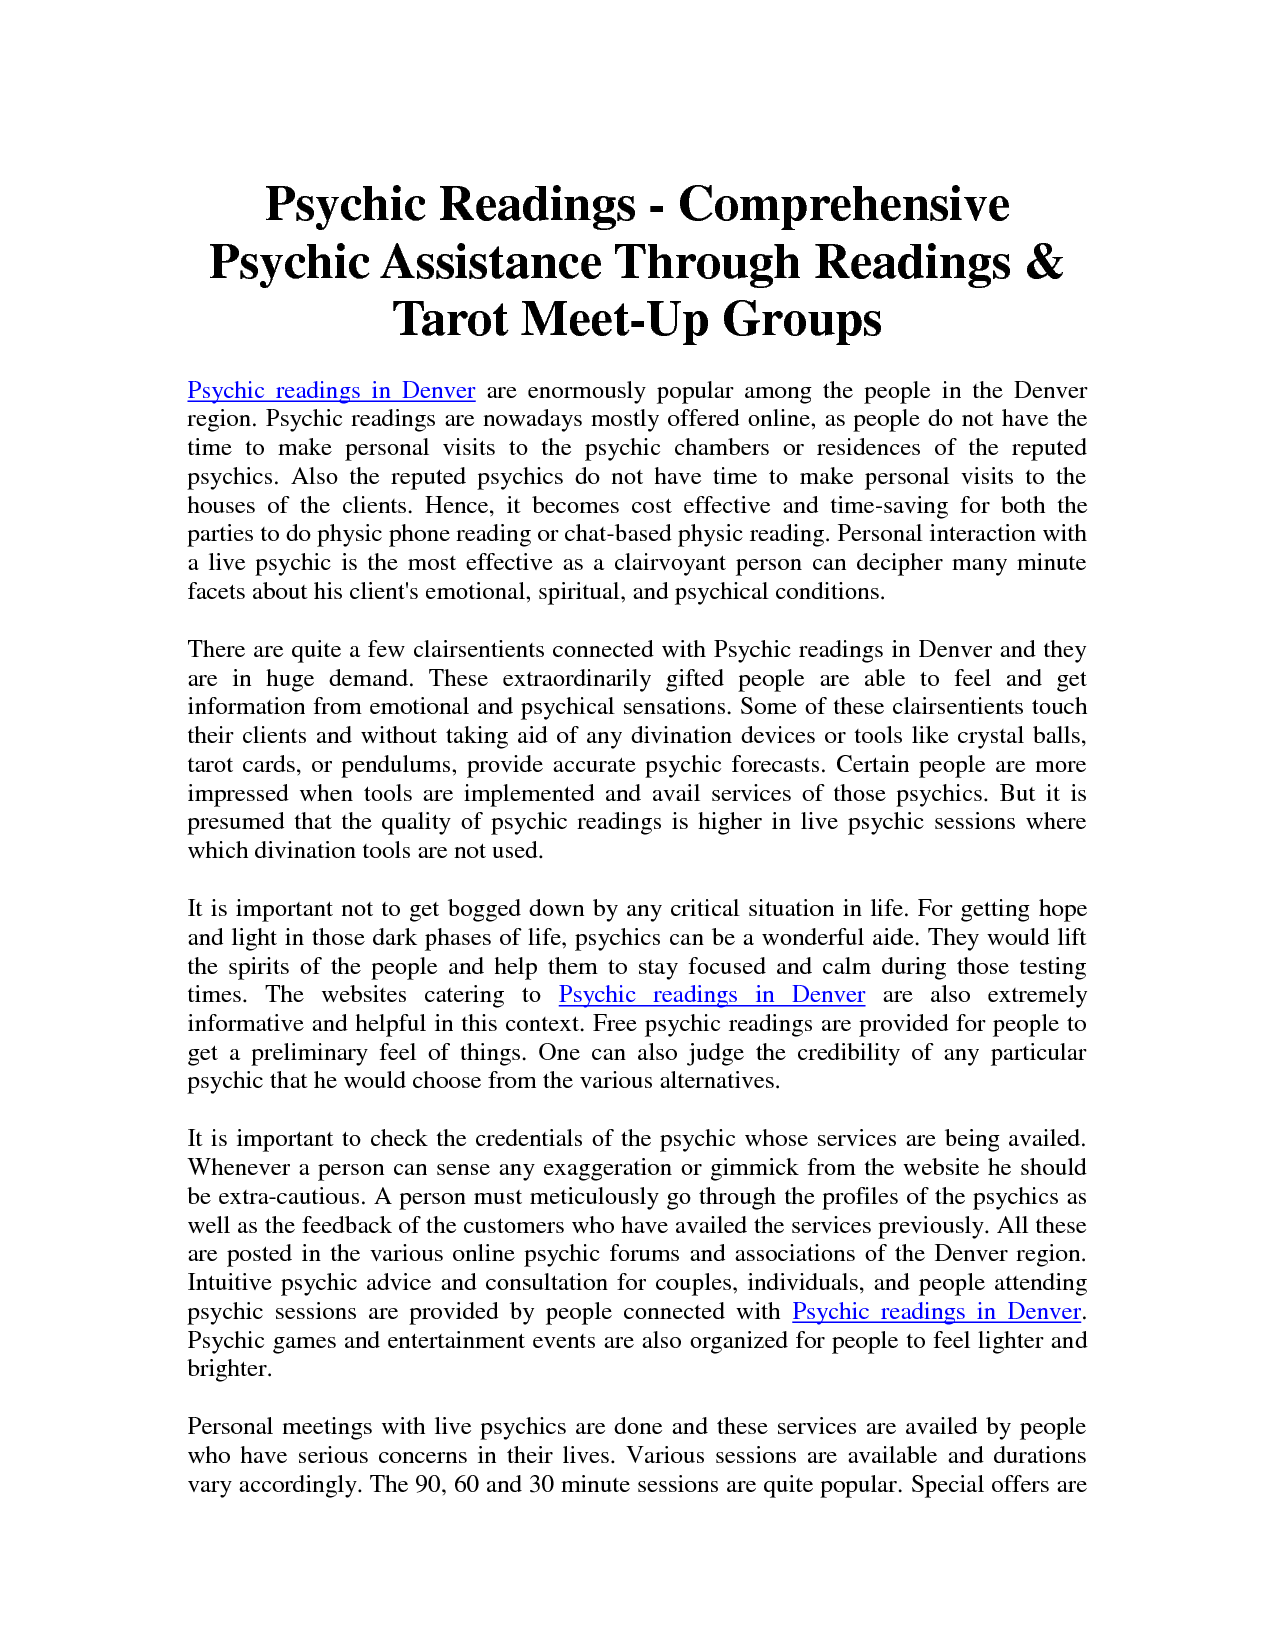 psychic reading denver